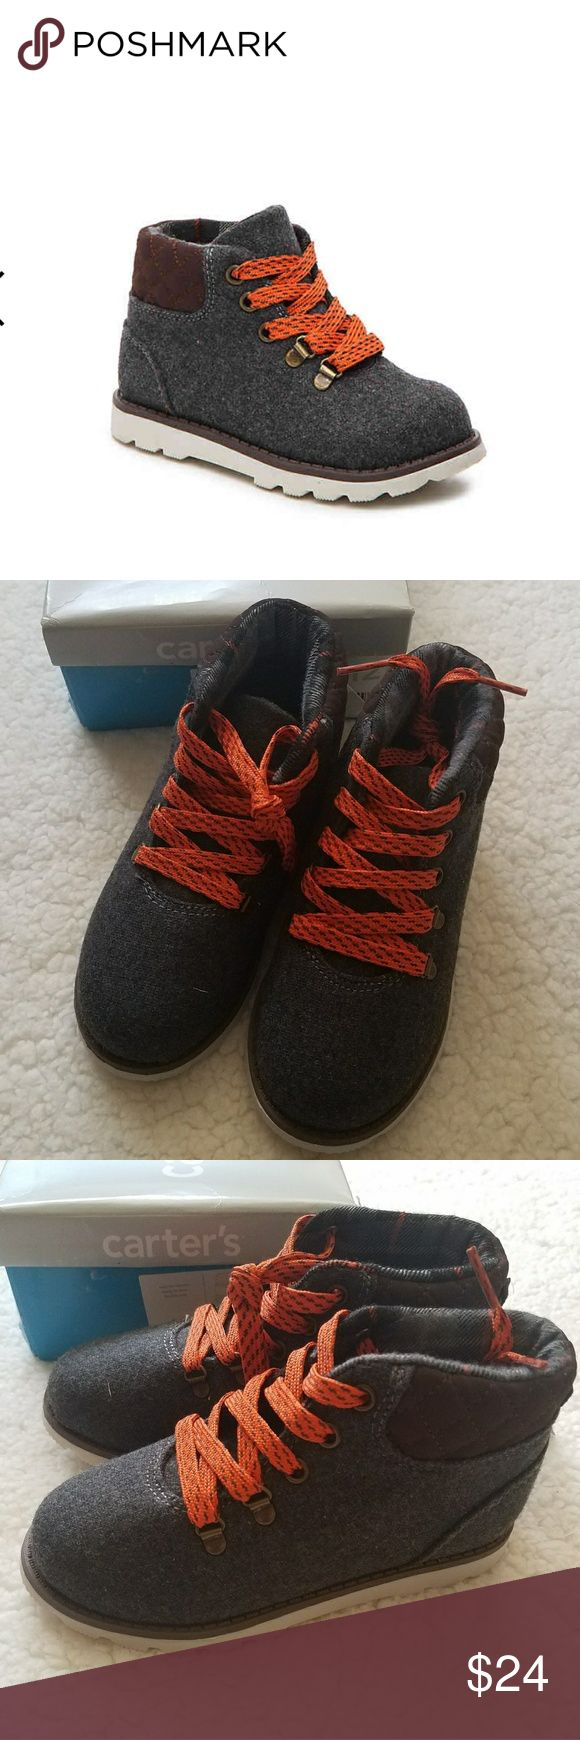 Carter's Marsh toddler boots Carters Marsh toddler boots boys toddler size 12 grey, brown, off white/orange laces  Wool fabric and synthetic upper Lace-up closure Rubber sole  New in box Carter's Shoes Boots